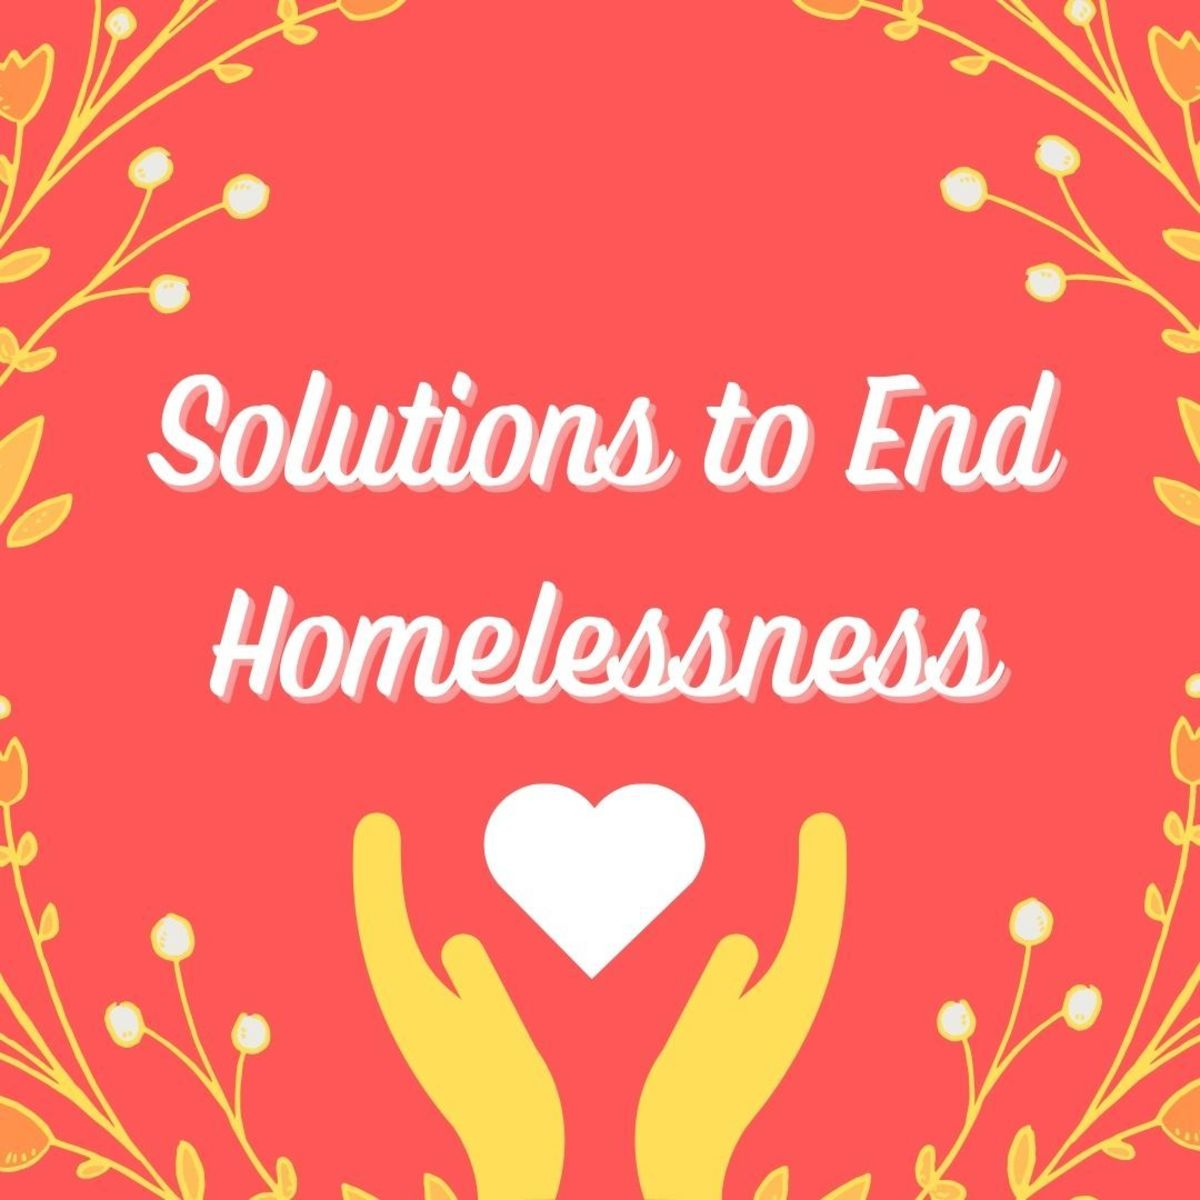 The Homelessness Problem: 6 Causes and Possible Solutions